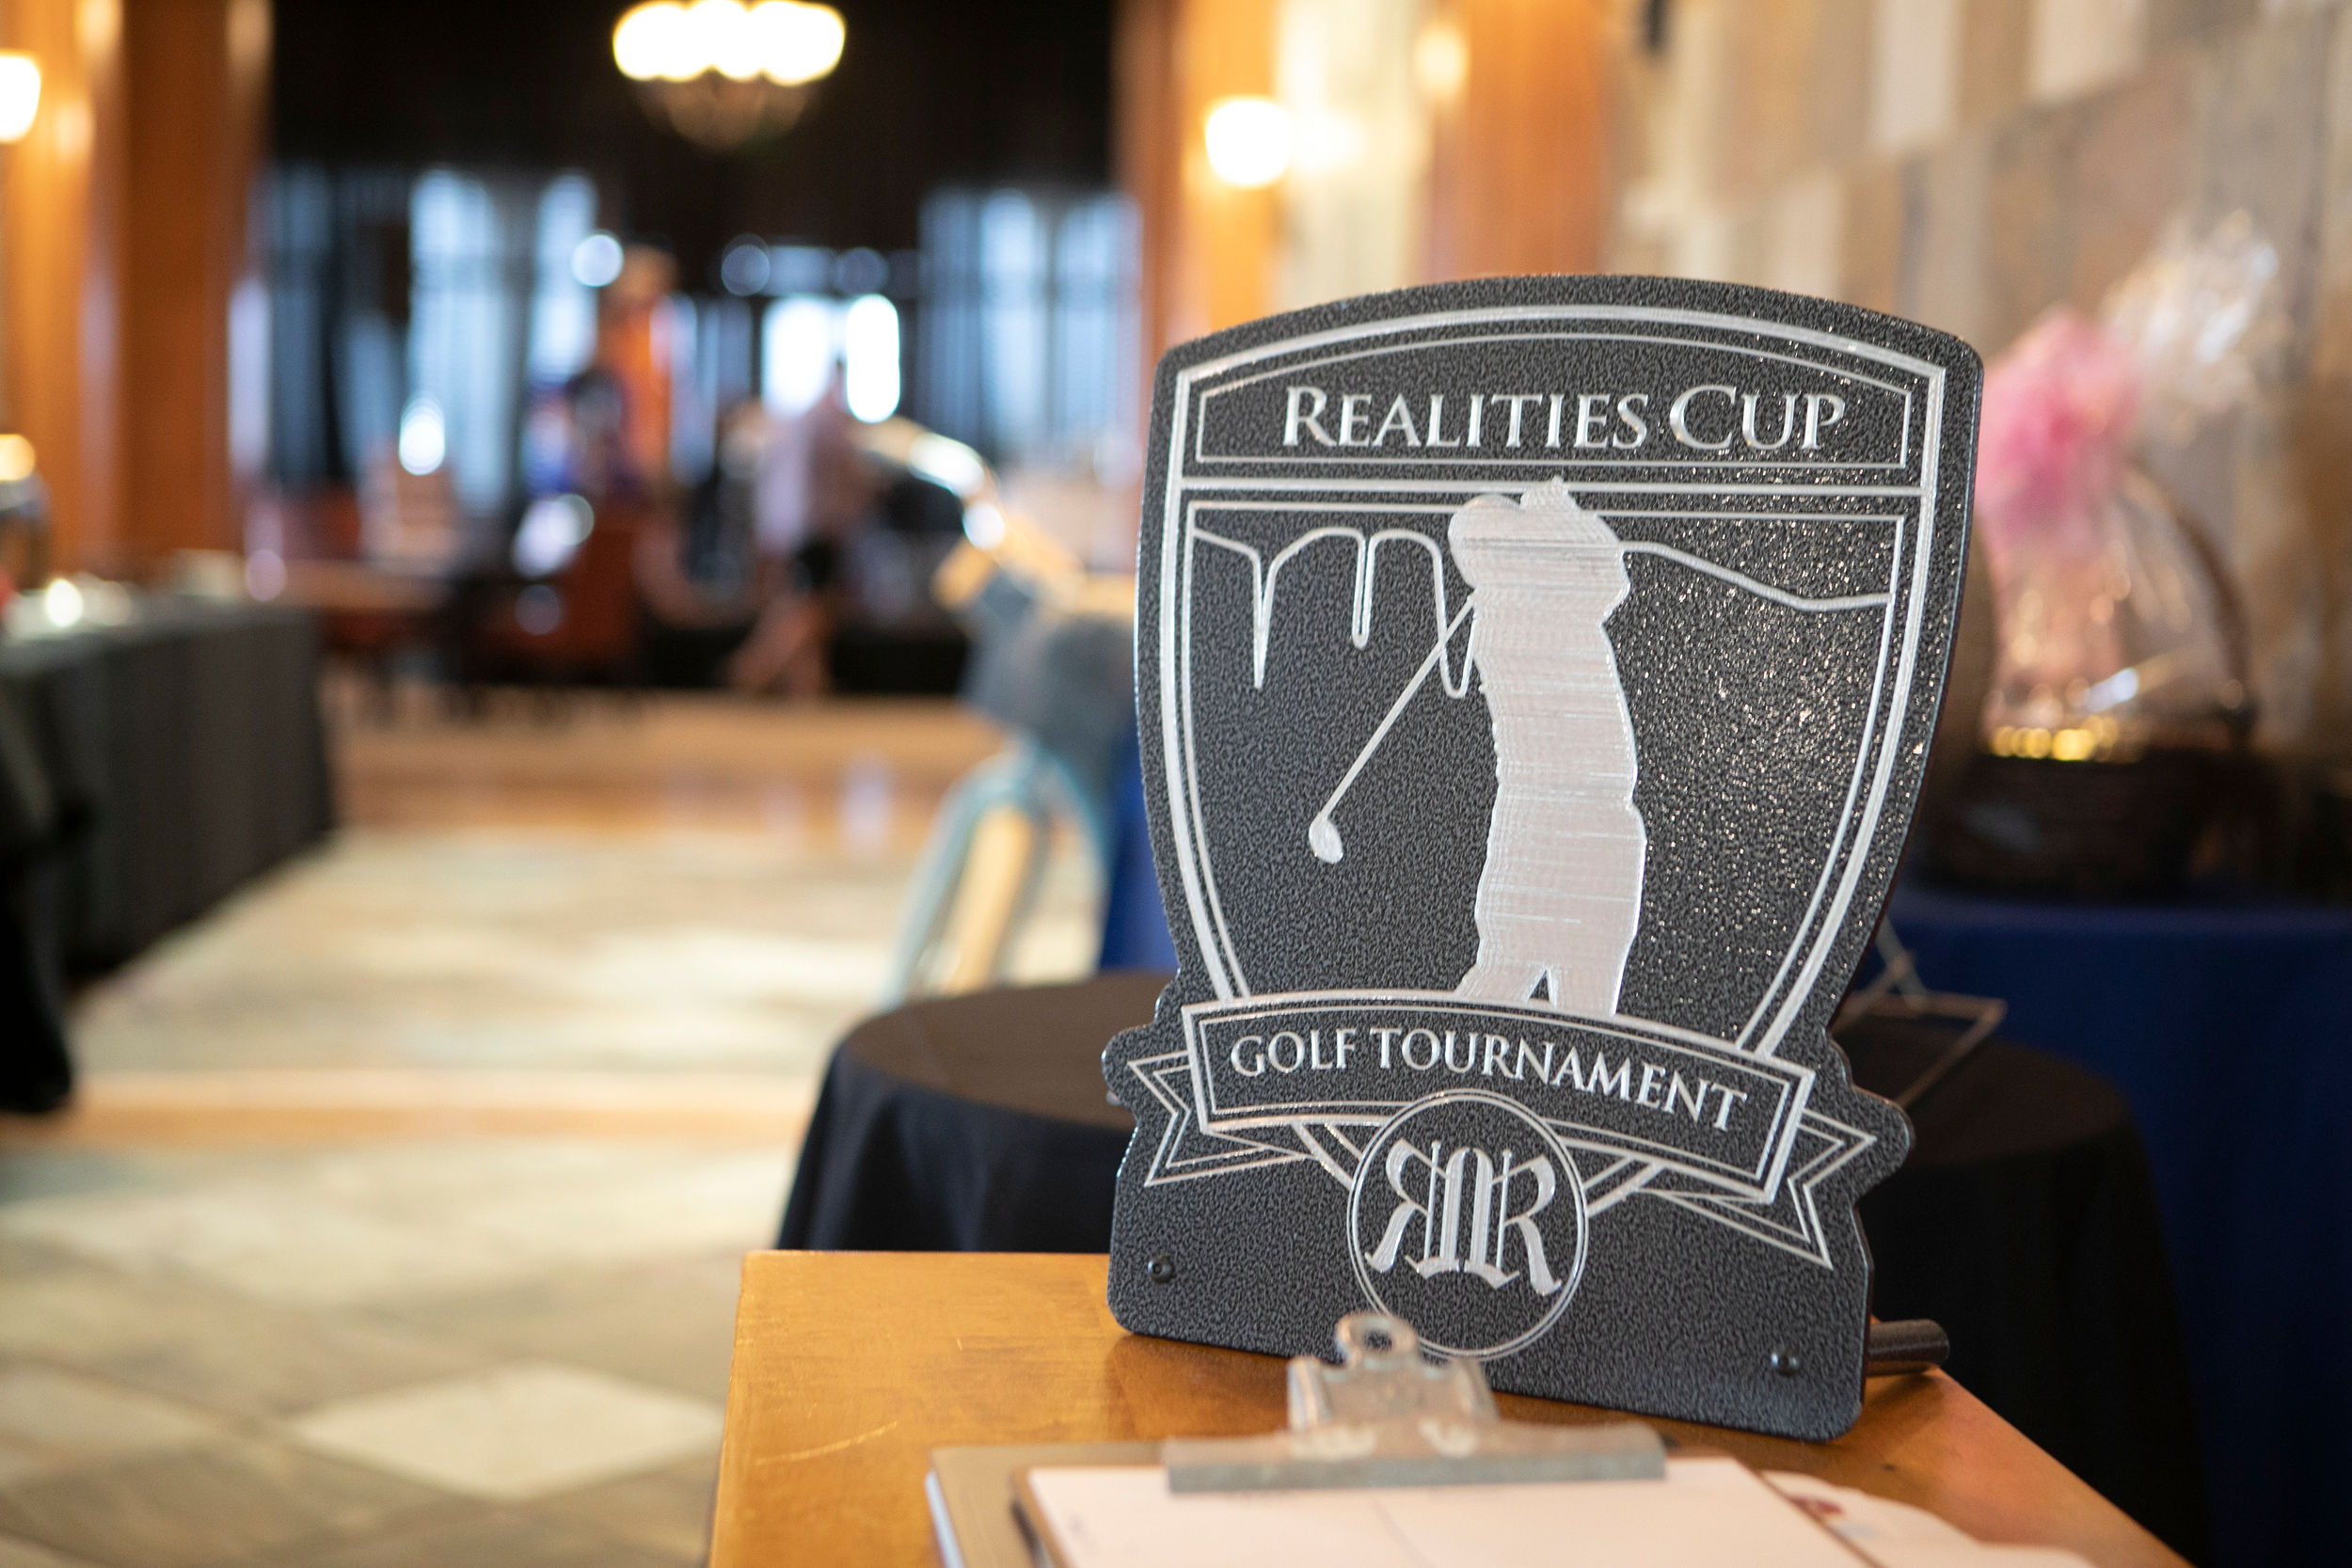 Welcome to the Realities Cup Banquest